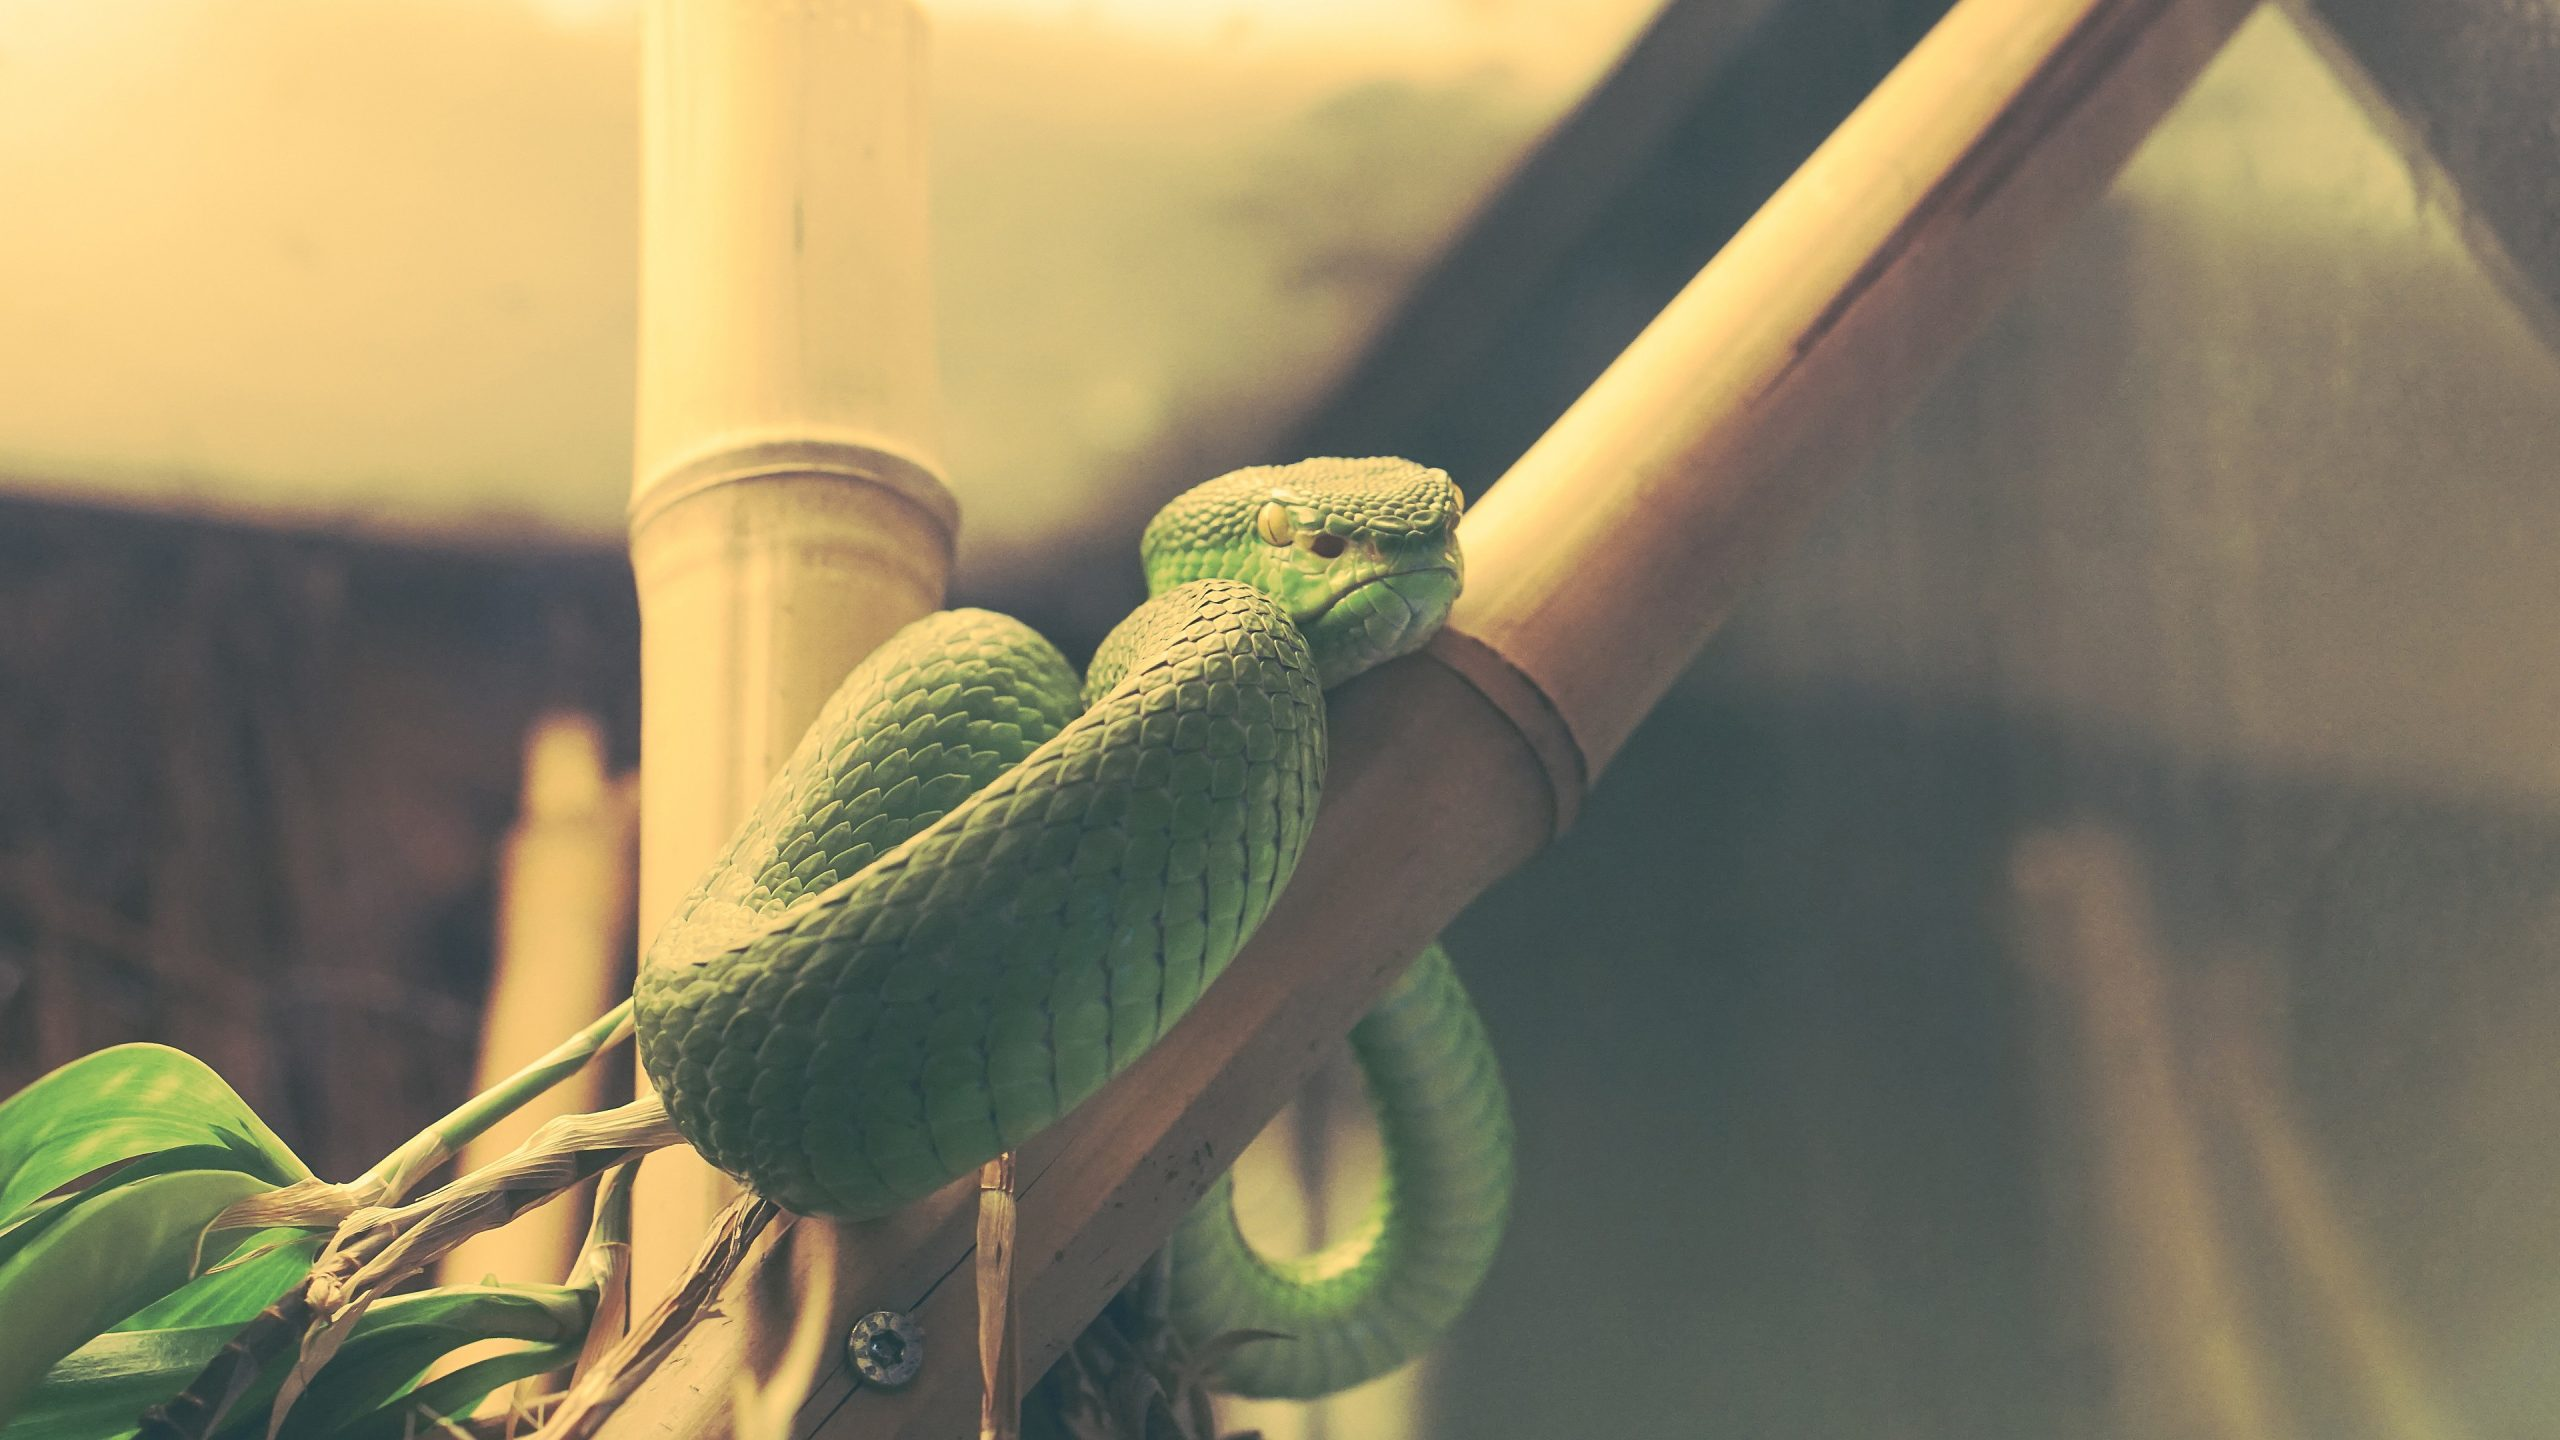 Green snake reptile wallpapers